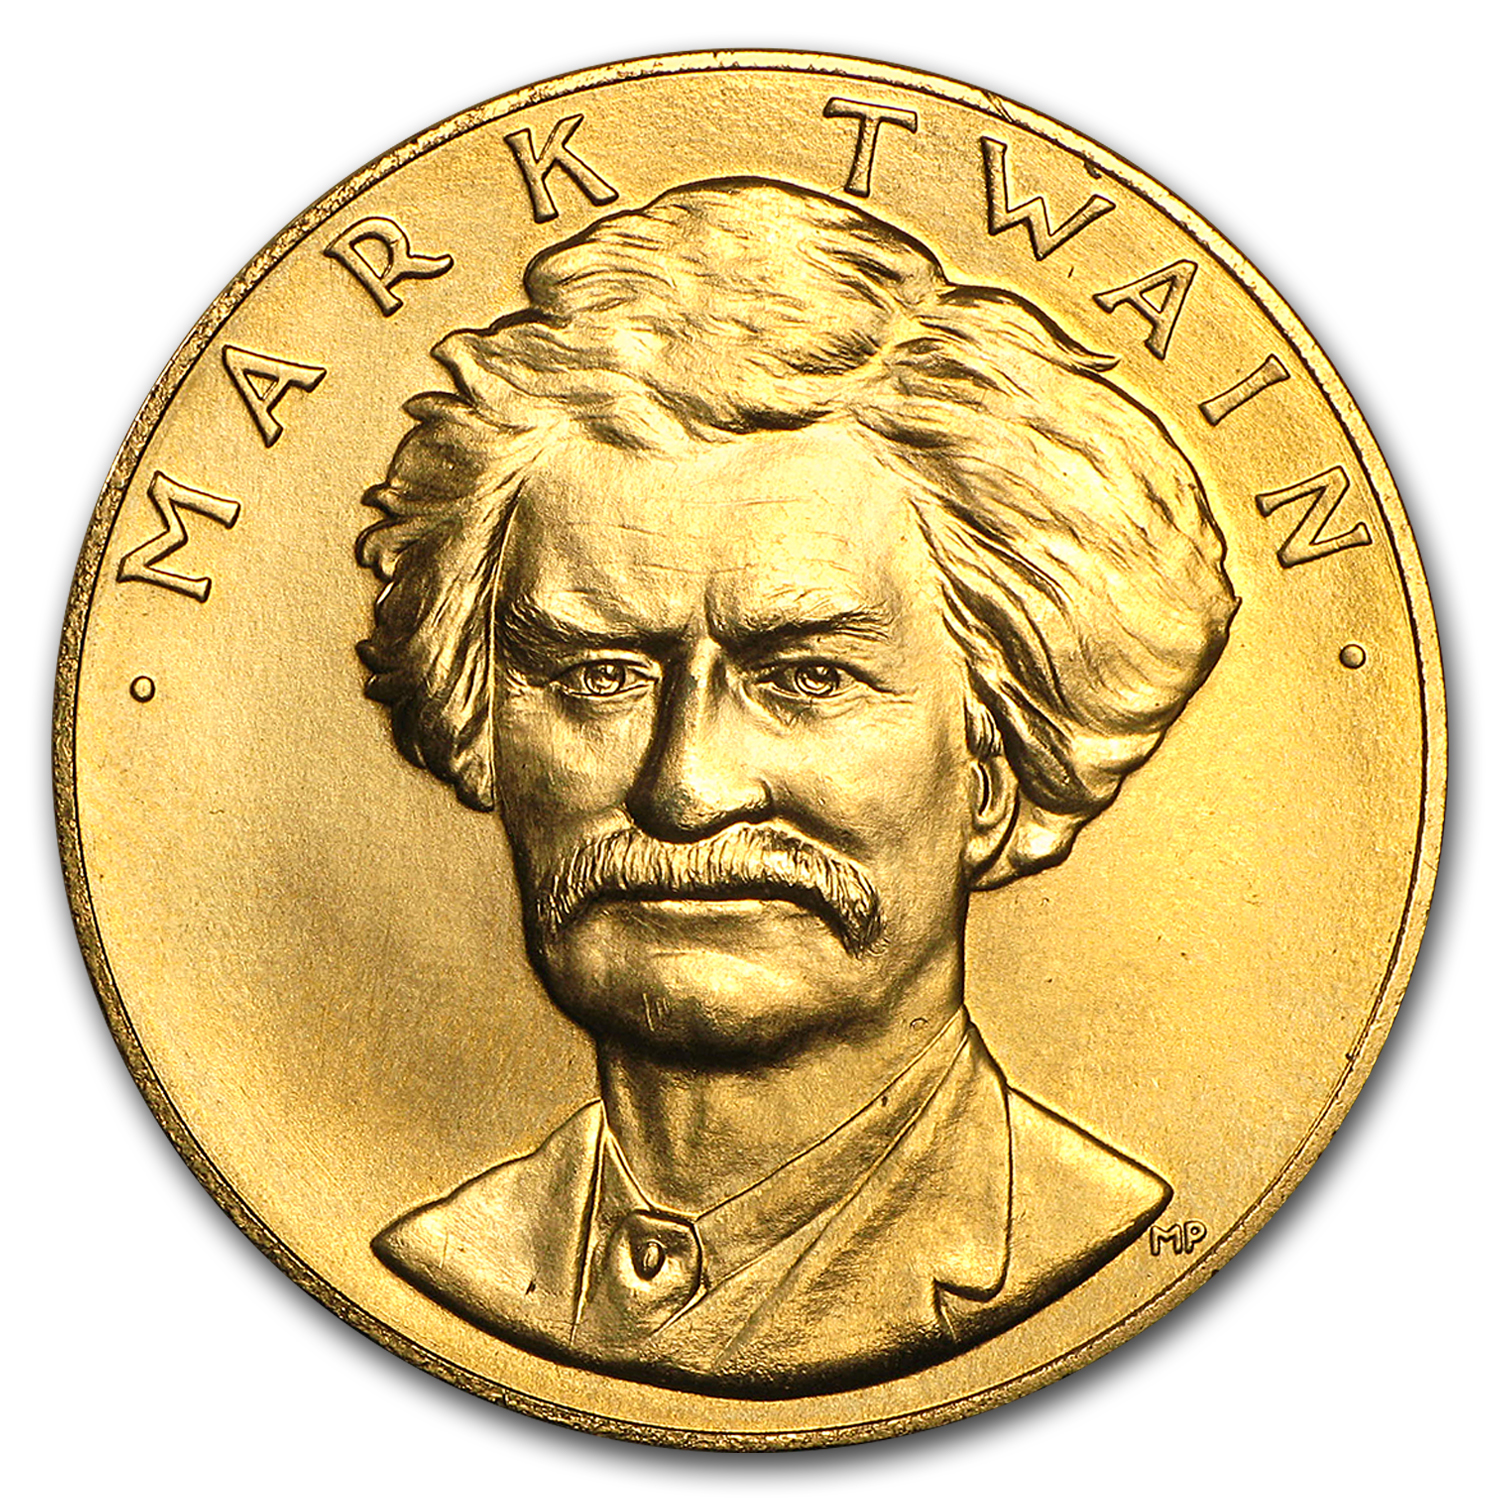 U.S. Mint 1 oz Gold Commemorative Arts Medal Mark Twain